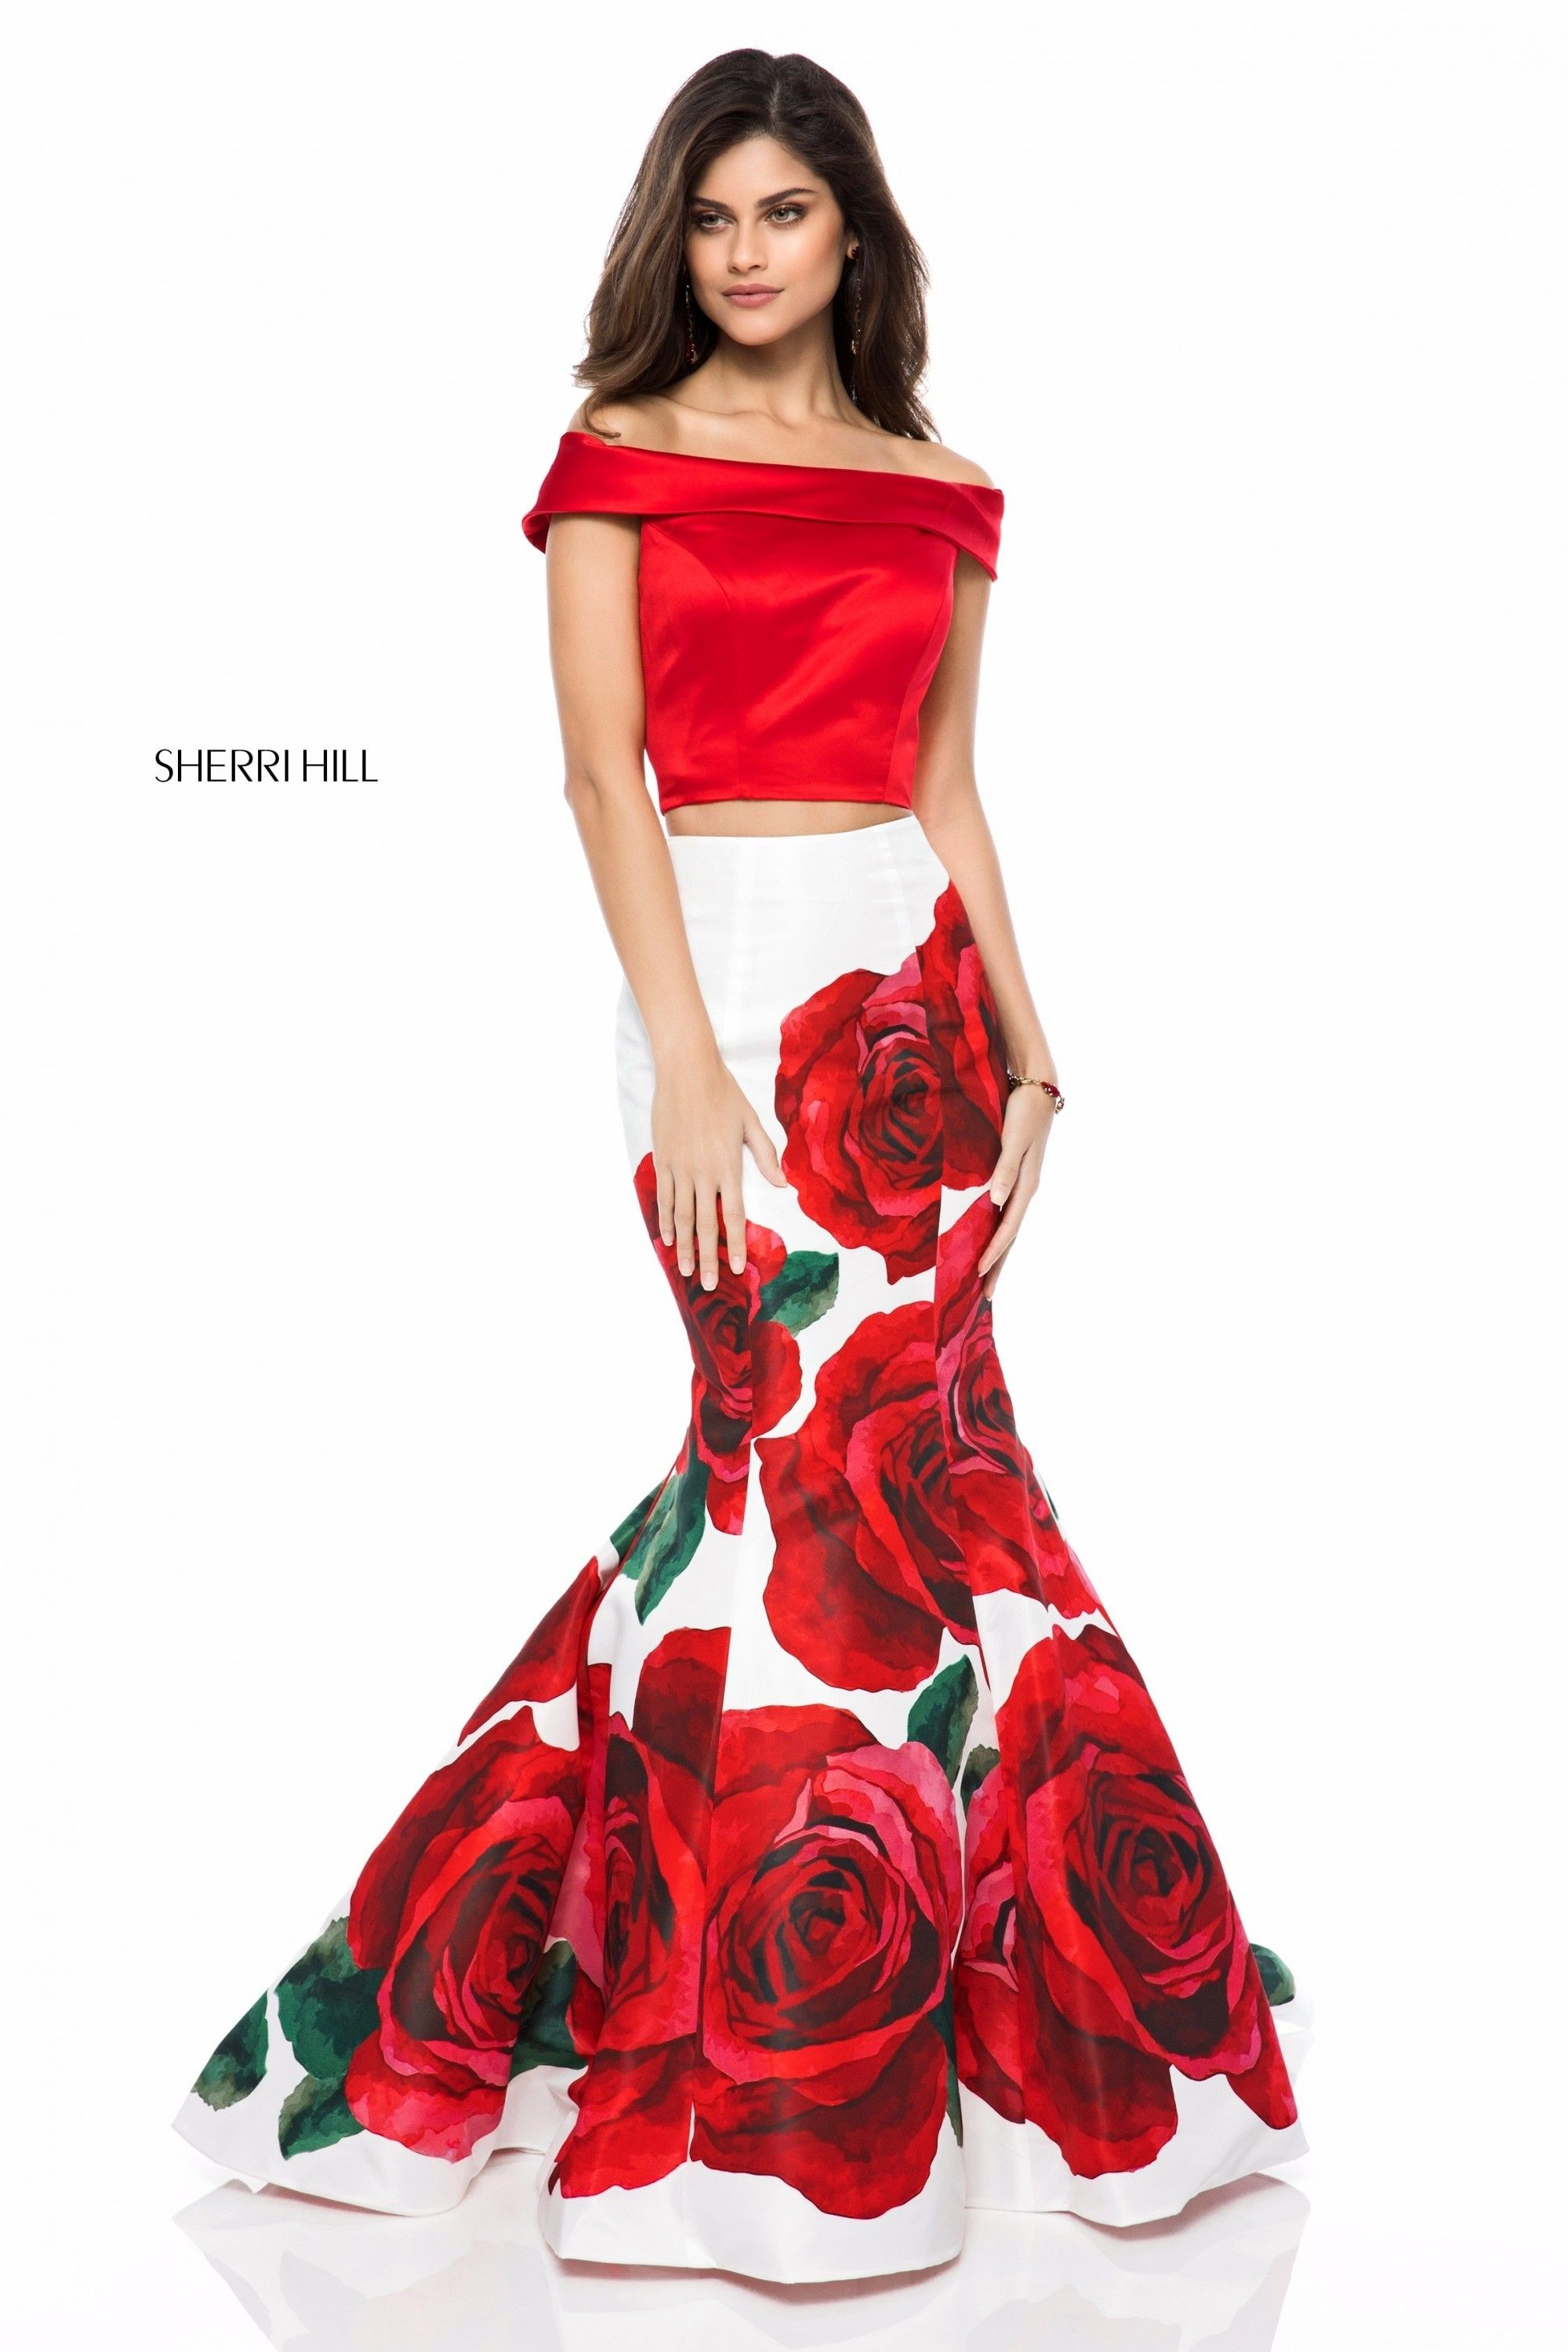 d5001d659e0 Receive roses from your admirer in Sherri Hill 51850. This passionate two- piece mermaid gown includes a satin top with a folded off-the-shoulder  neckline